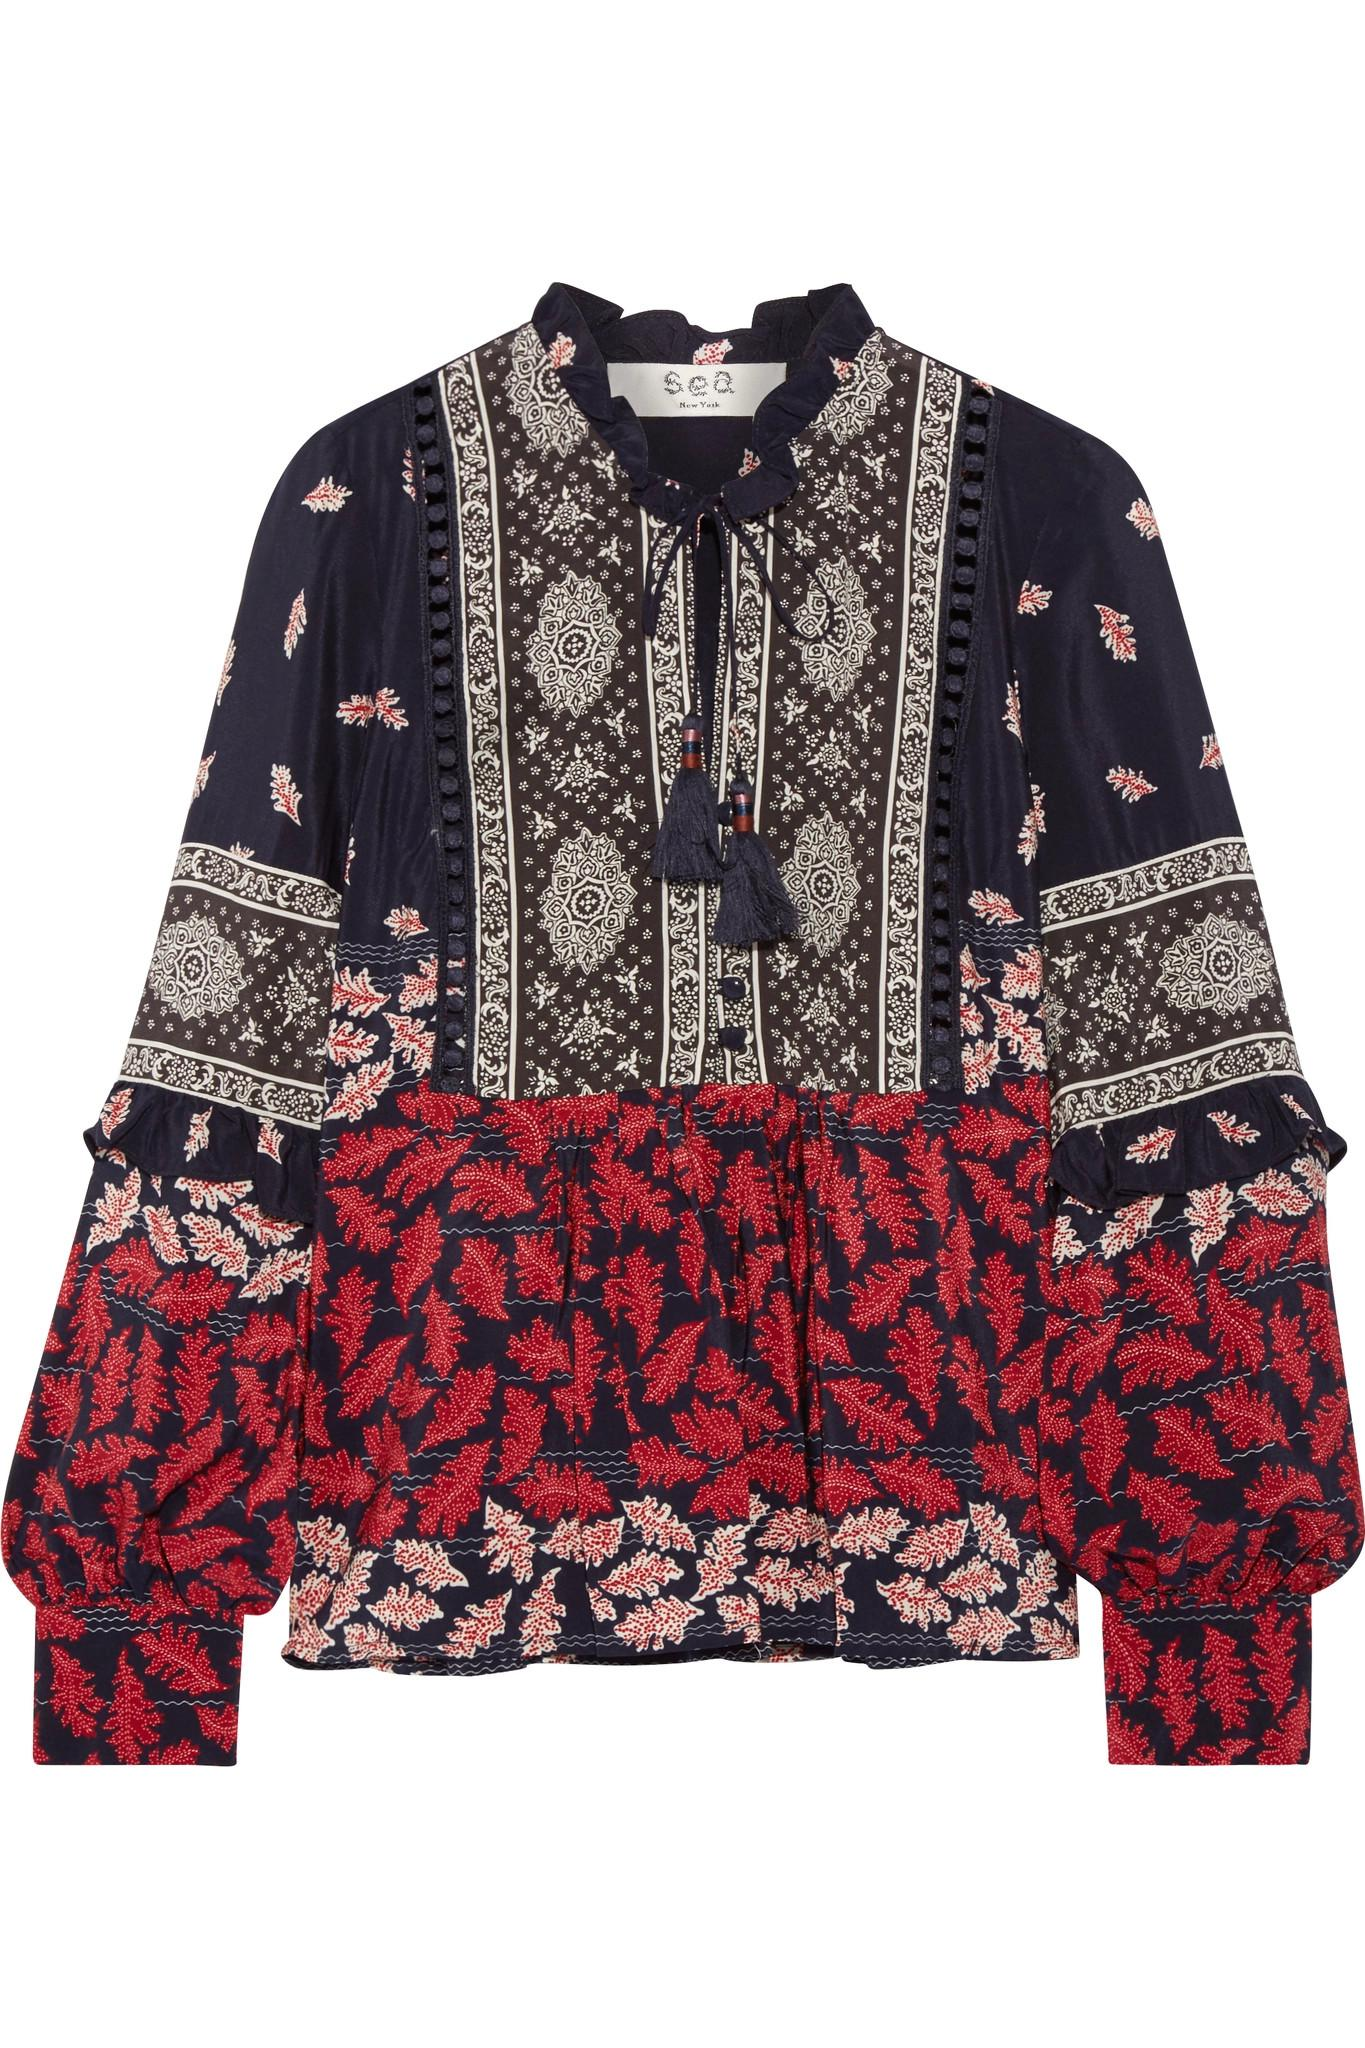 Discount With Paypal Sea Woman Ruffle-trimmed Printed Silk Crepe De Chine Blouse Multicolor Size 4 Sea New York Free Shipping Find Great Discount Manchester g9zbJYnv1